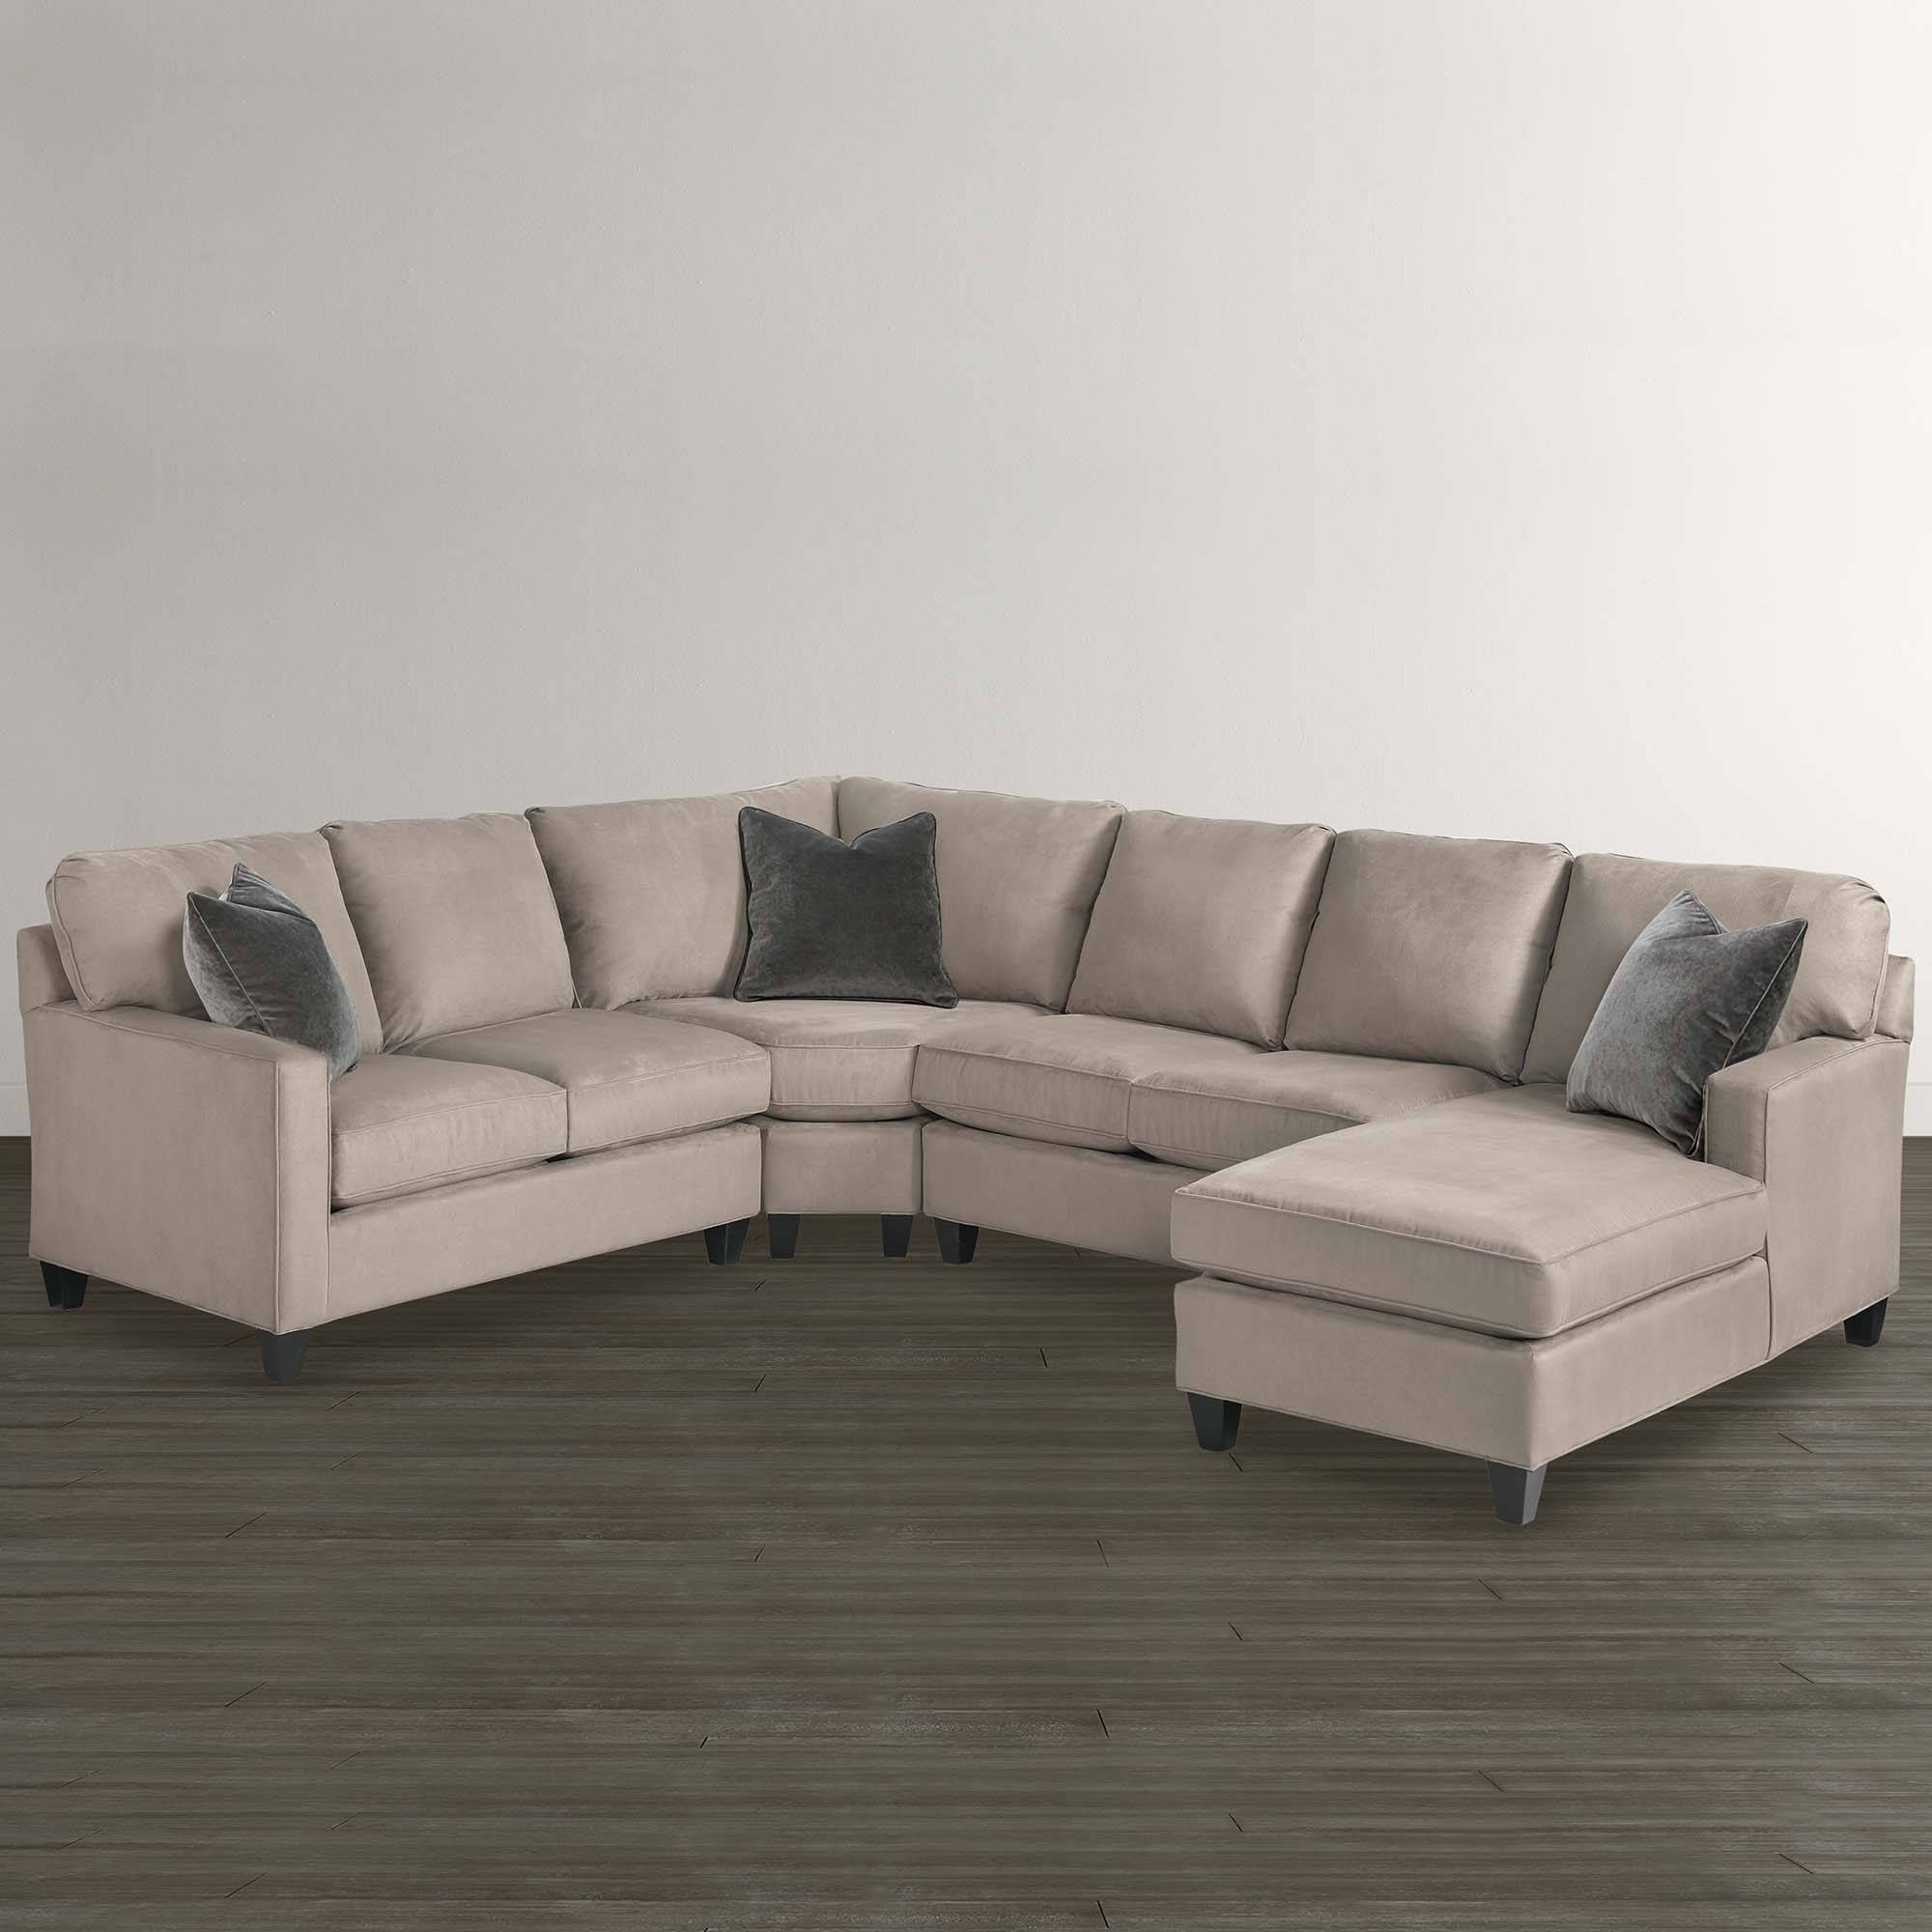 A Sectional Sofa Collection With Something For Everyone within Custom Made Sectional Sofas (Image 5 of 30)